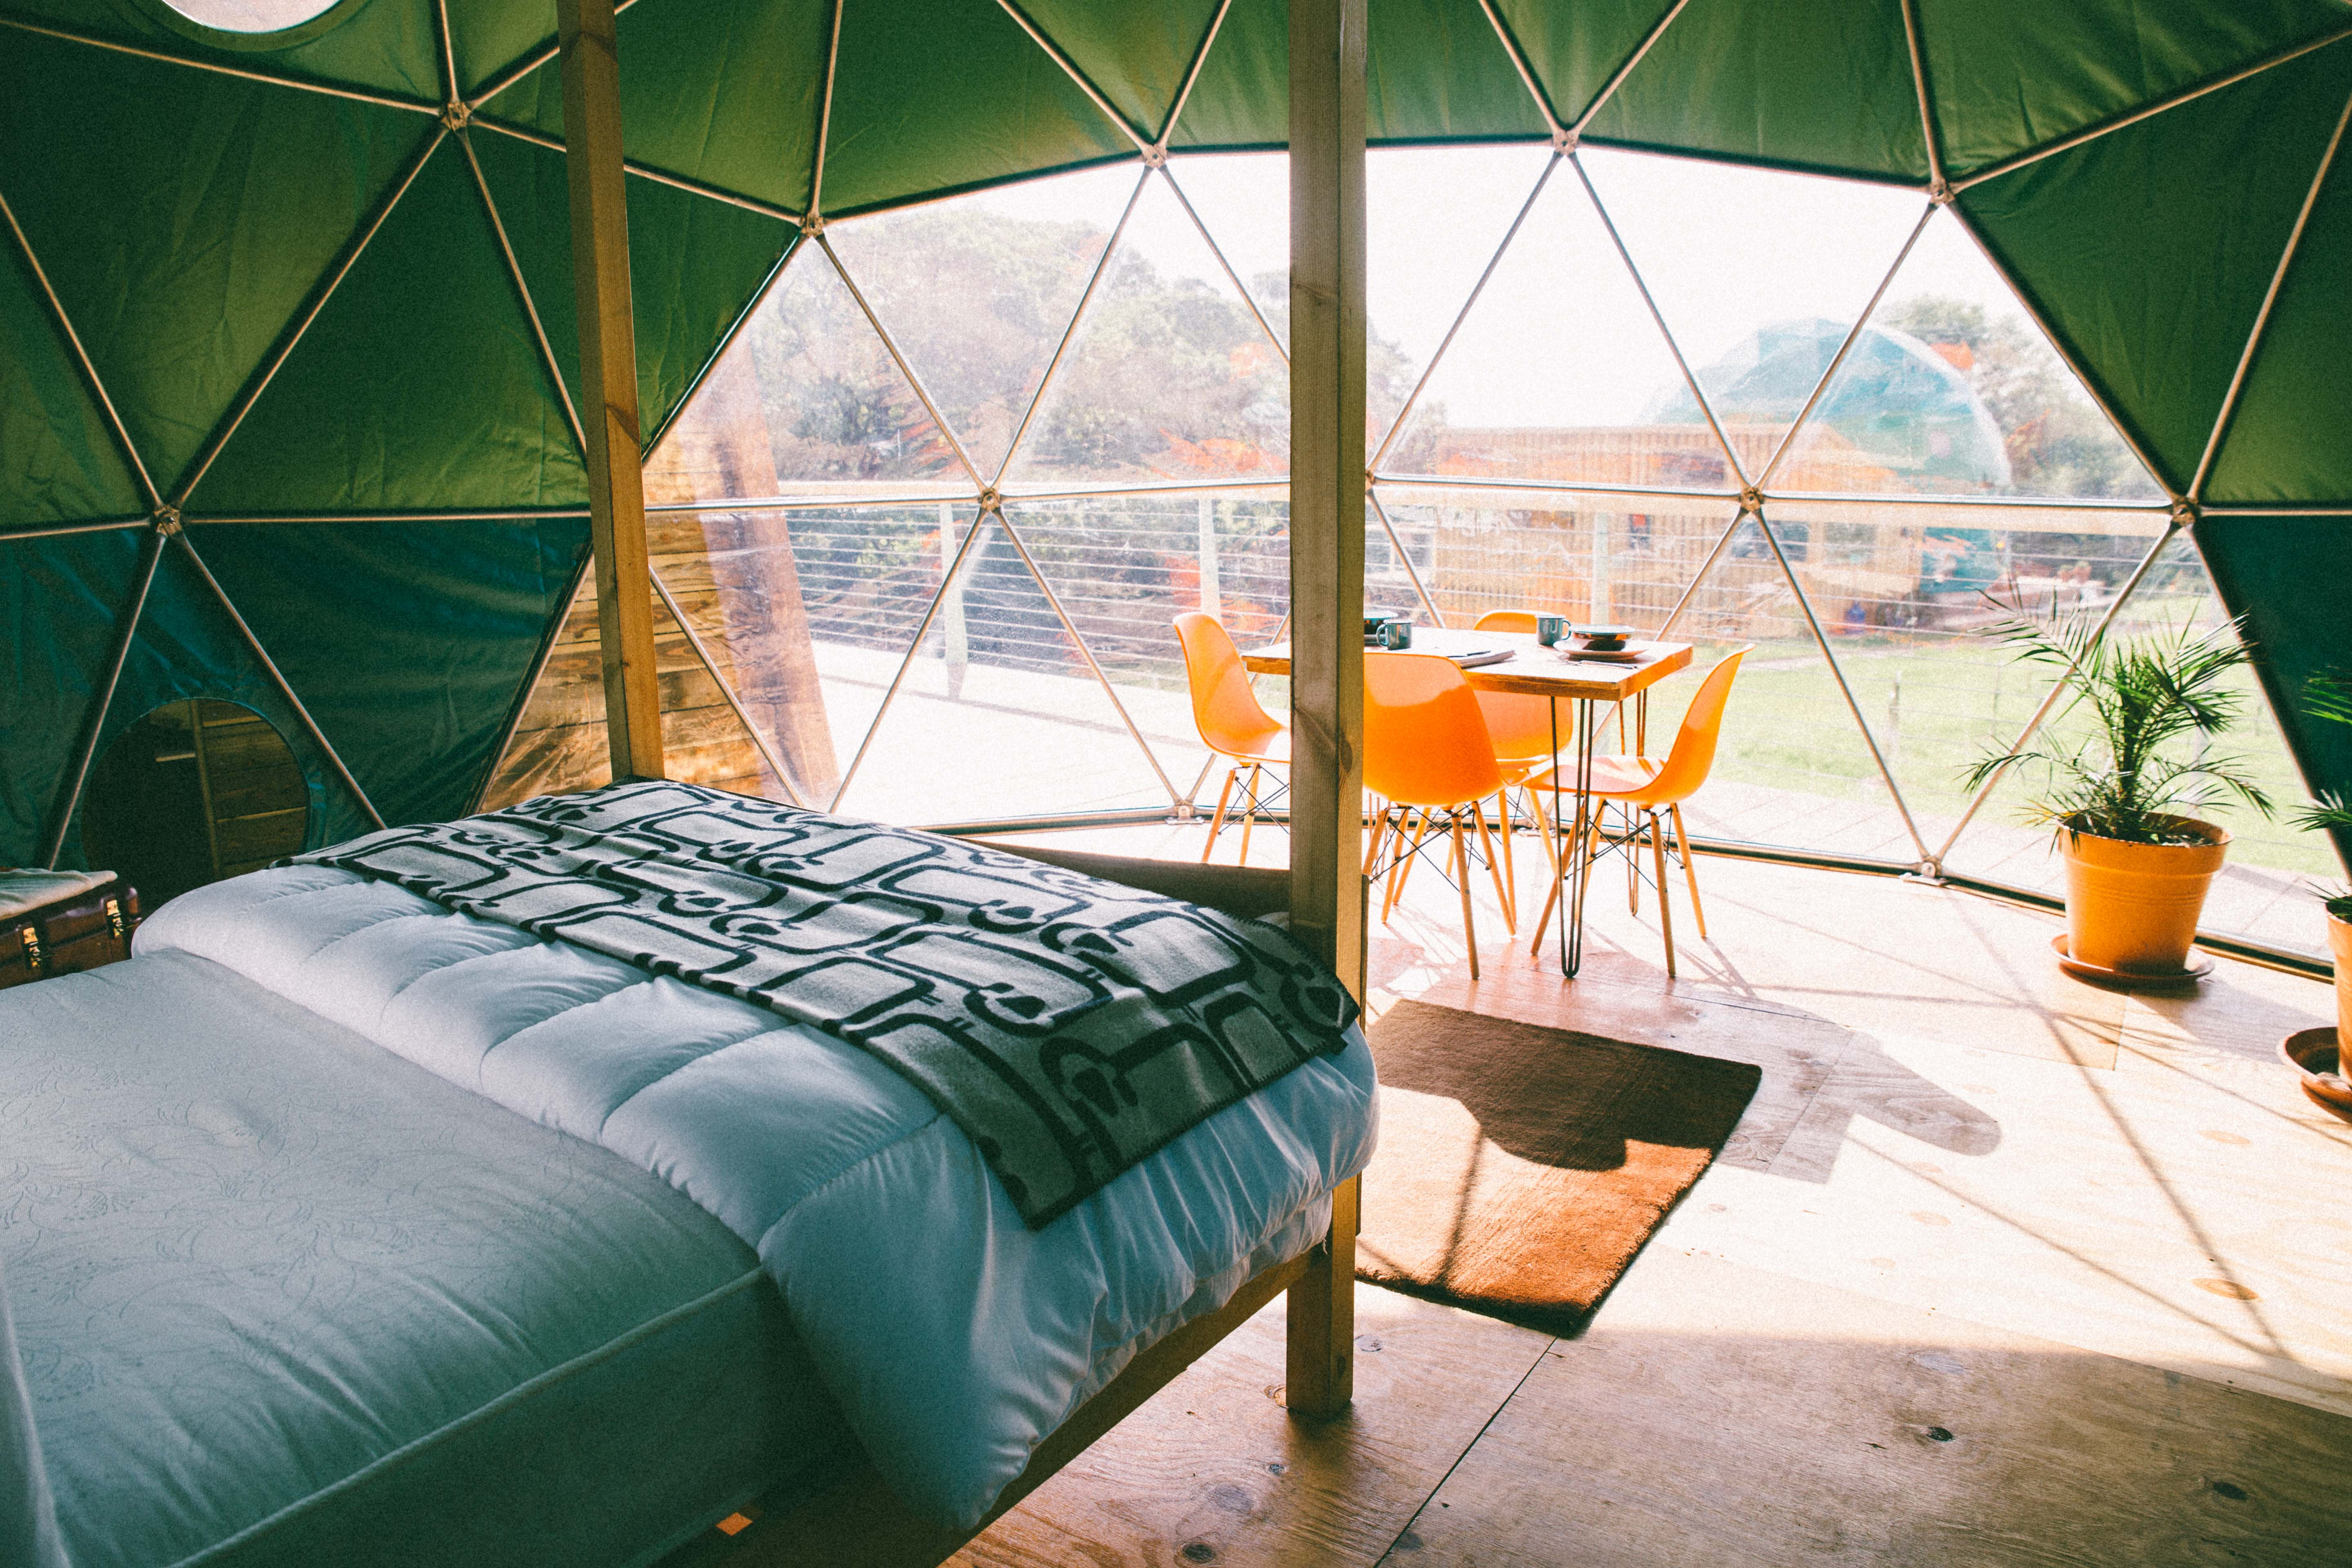 Loveland Farm Camping, eco pods and camping in glorious North Devon countryside at Hartland.